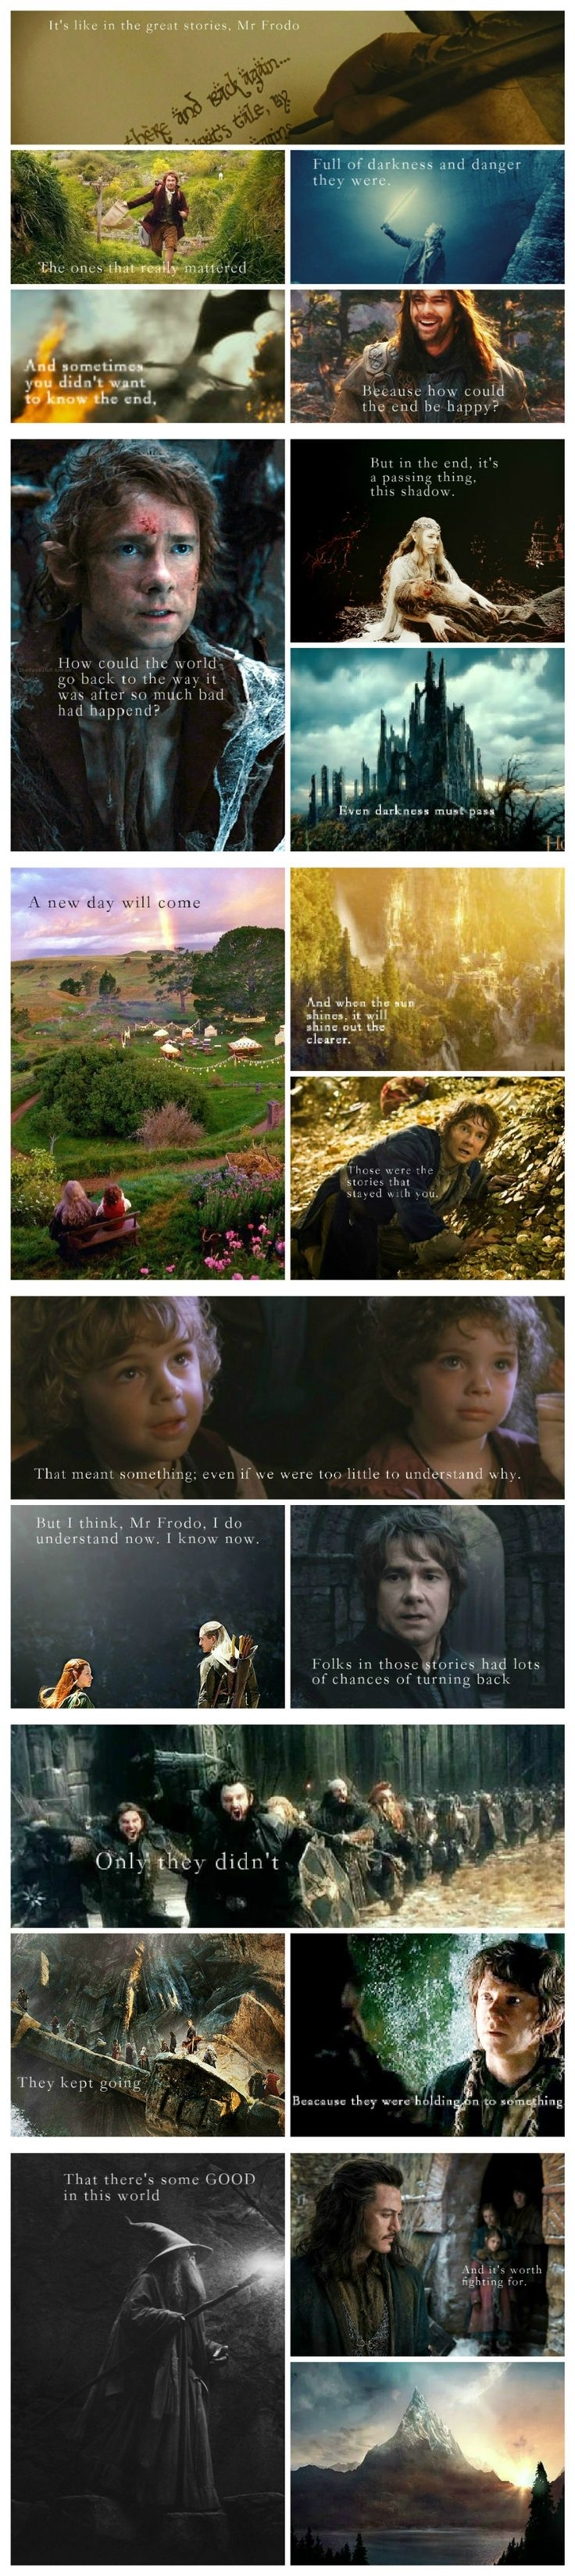 It's like in the great stories... {this is my first hobbit/lotr related edit :)}